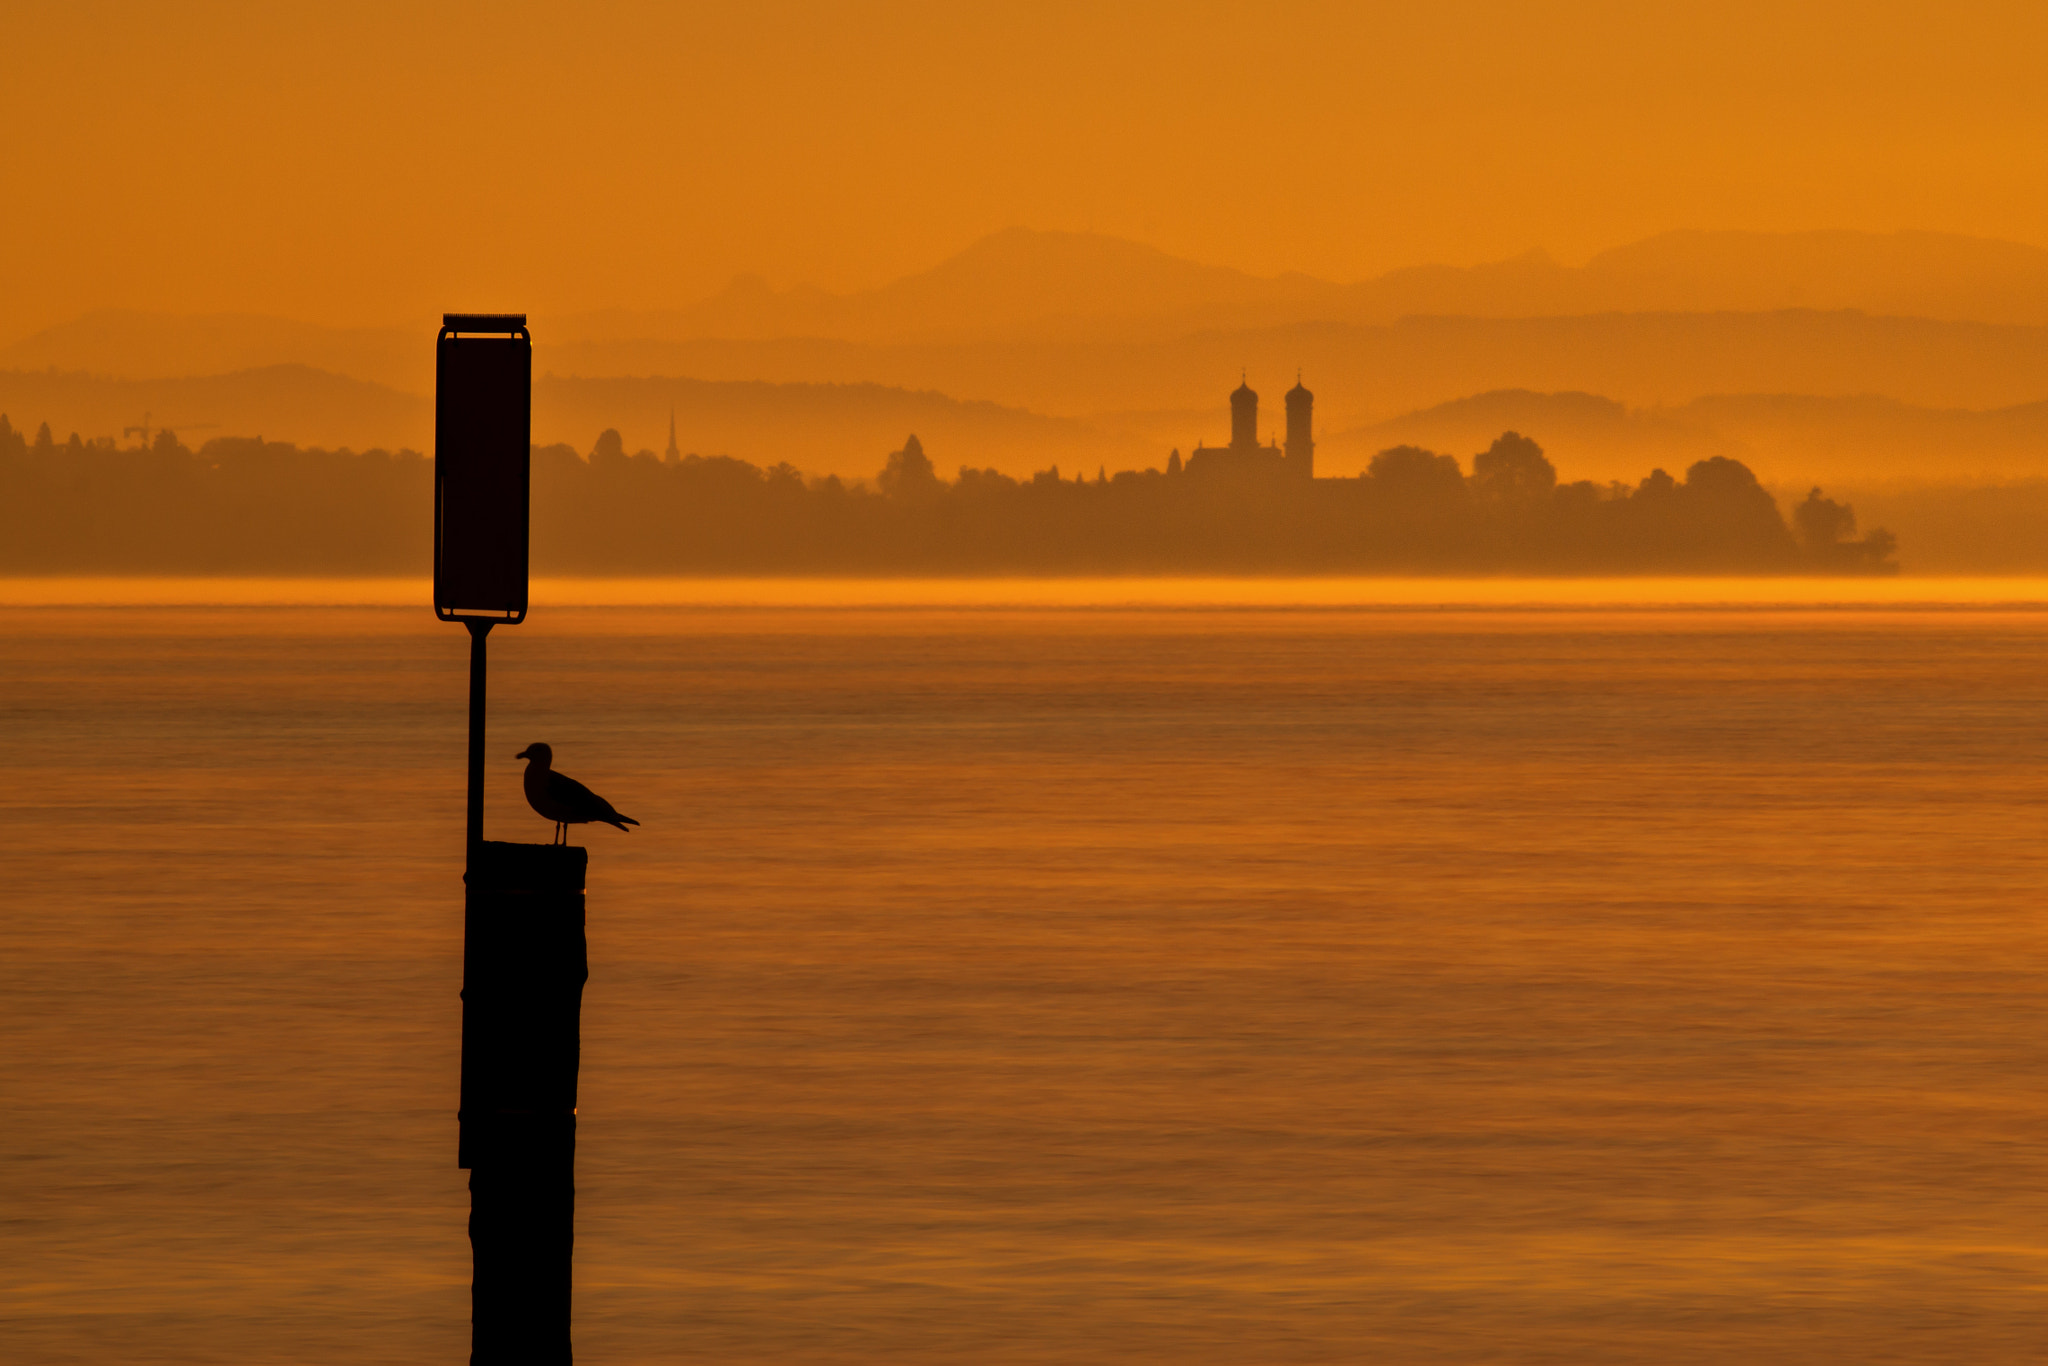 Photograph the early bird catches the worm by Tobias Guter on 500px